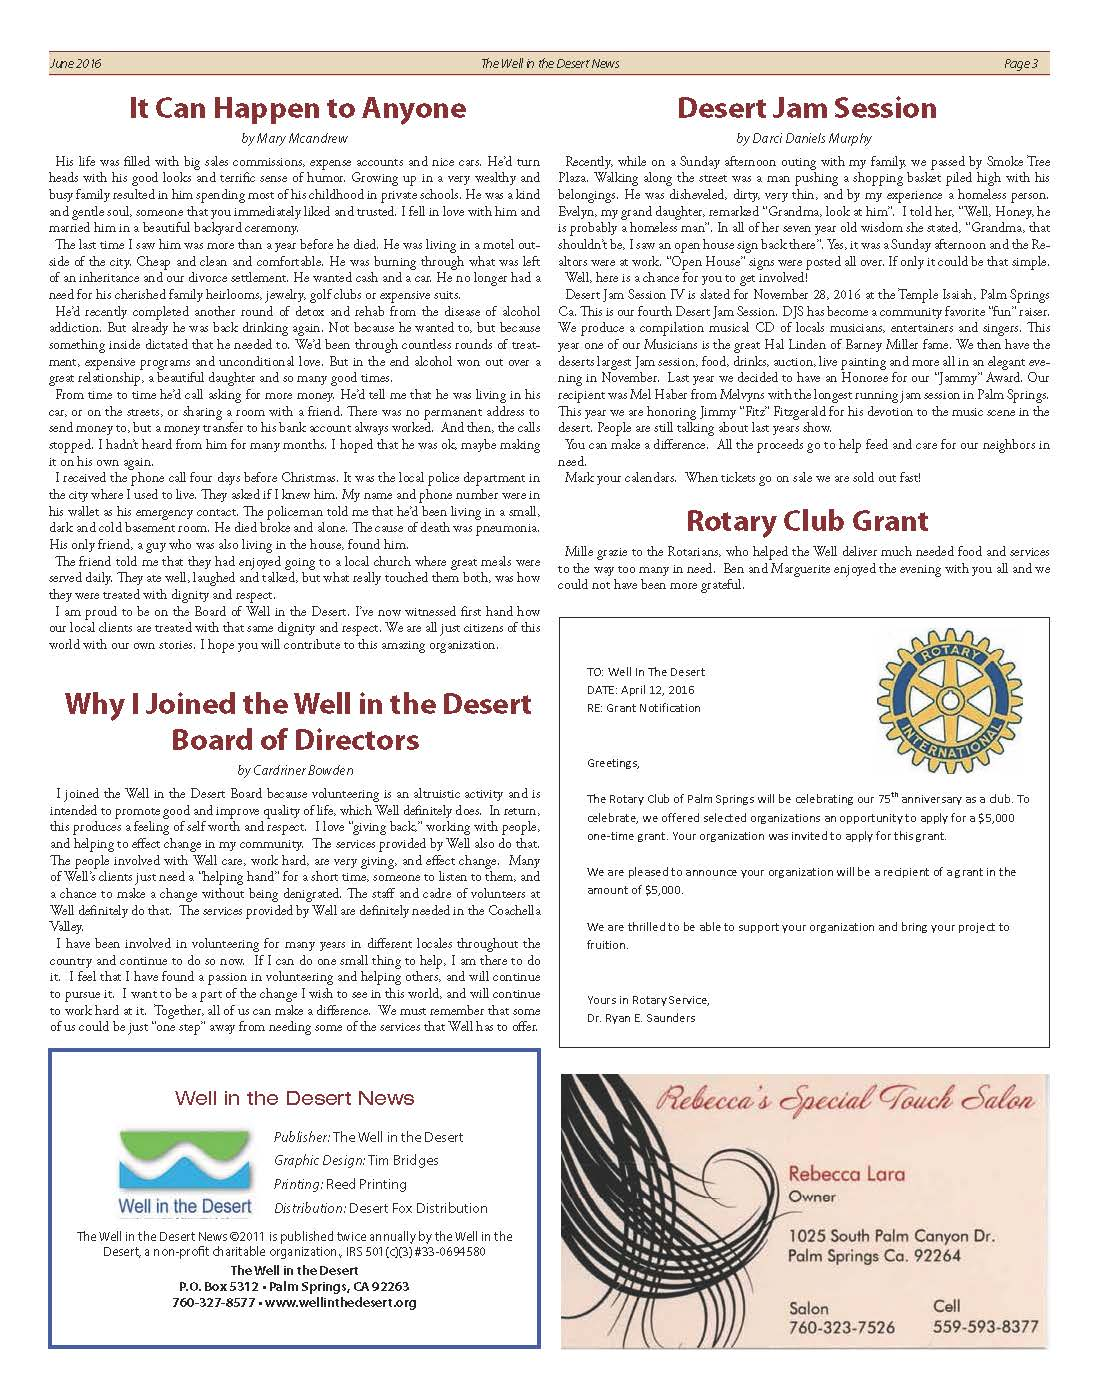 Well-Newsletter_Page_03.jpg